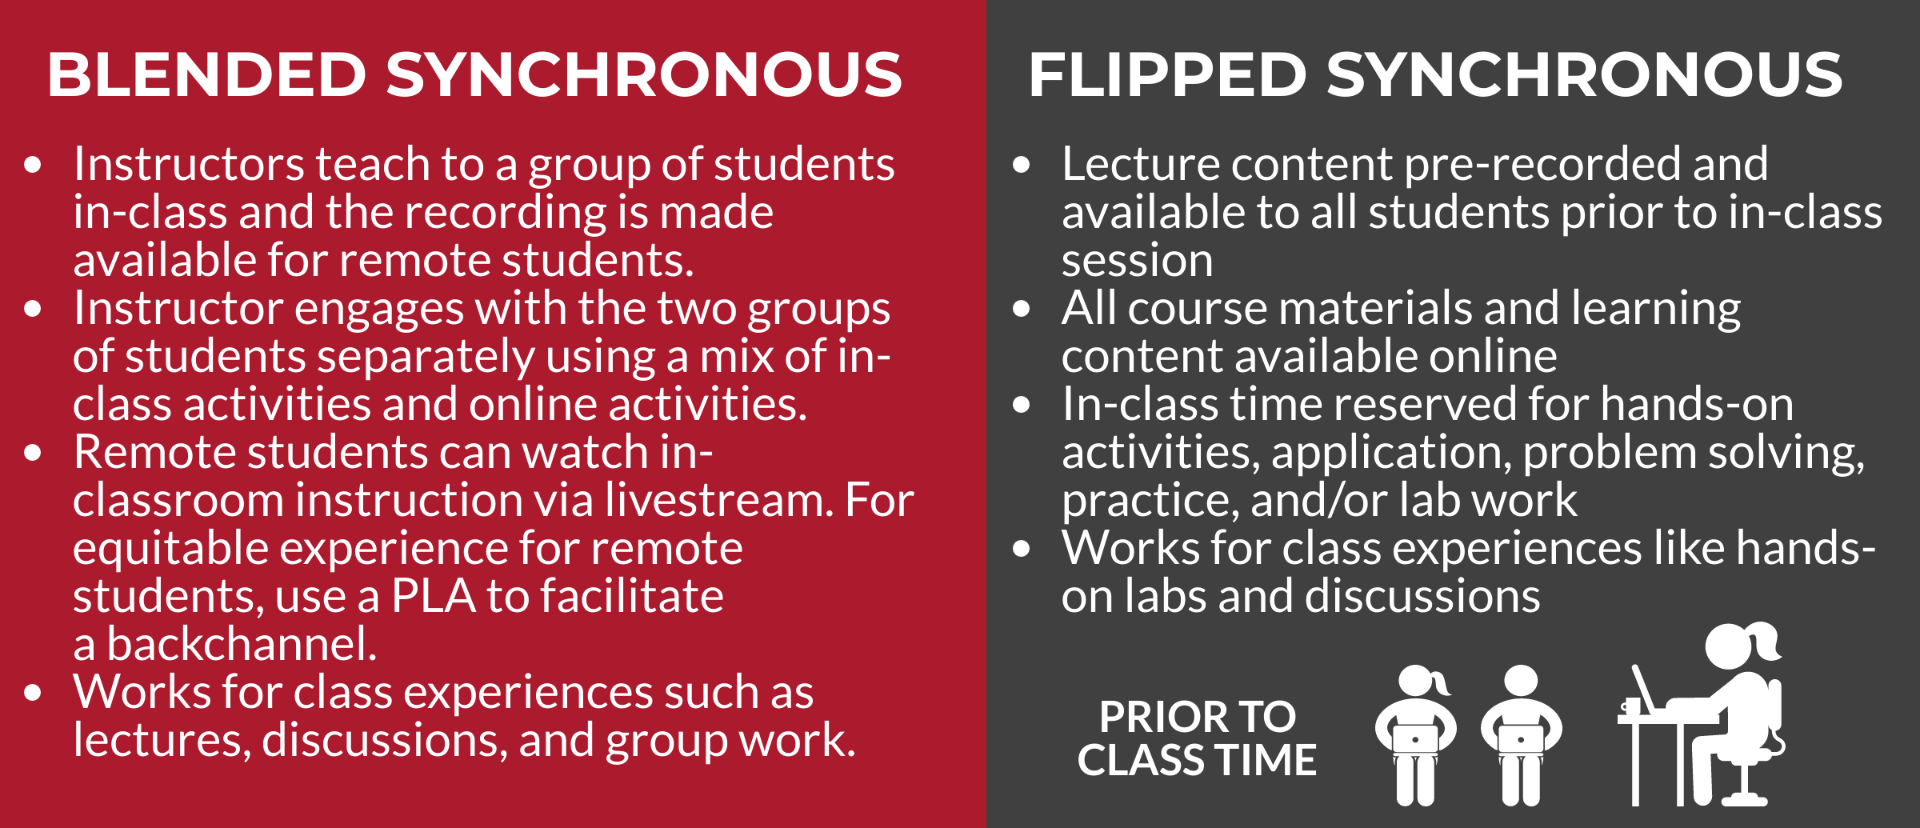 descriptions of blended and flipped synchronous teaching styles